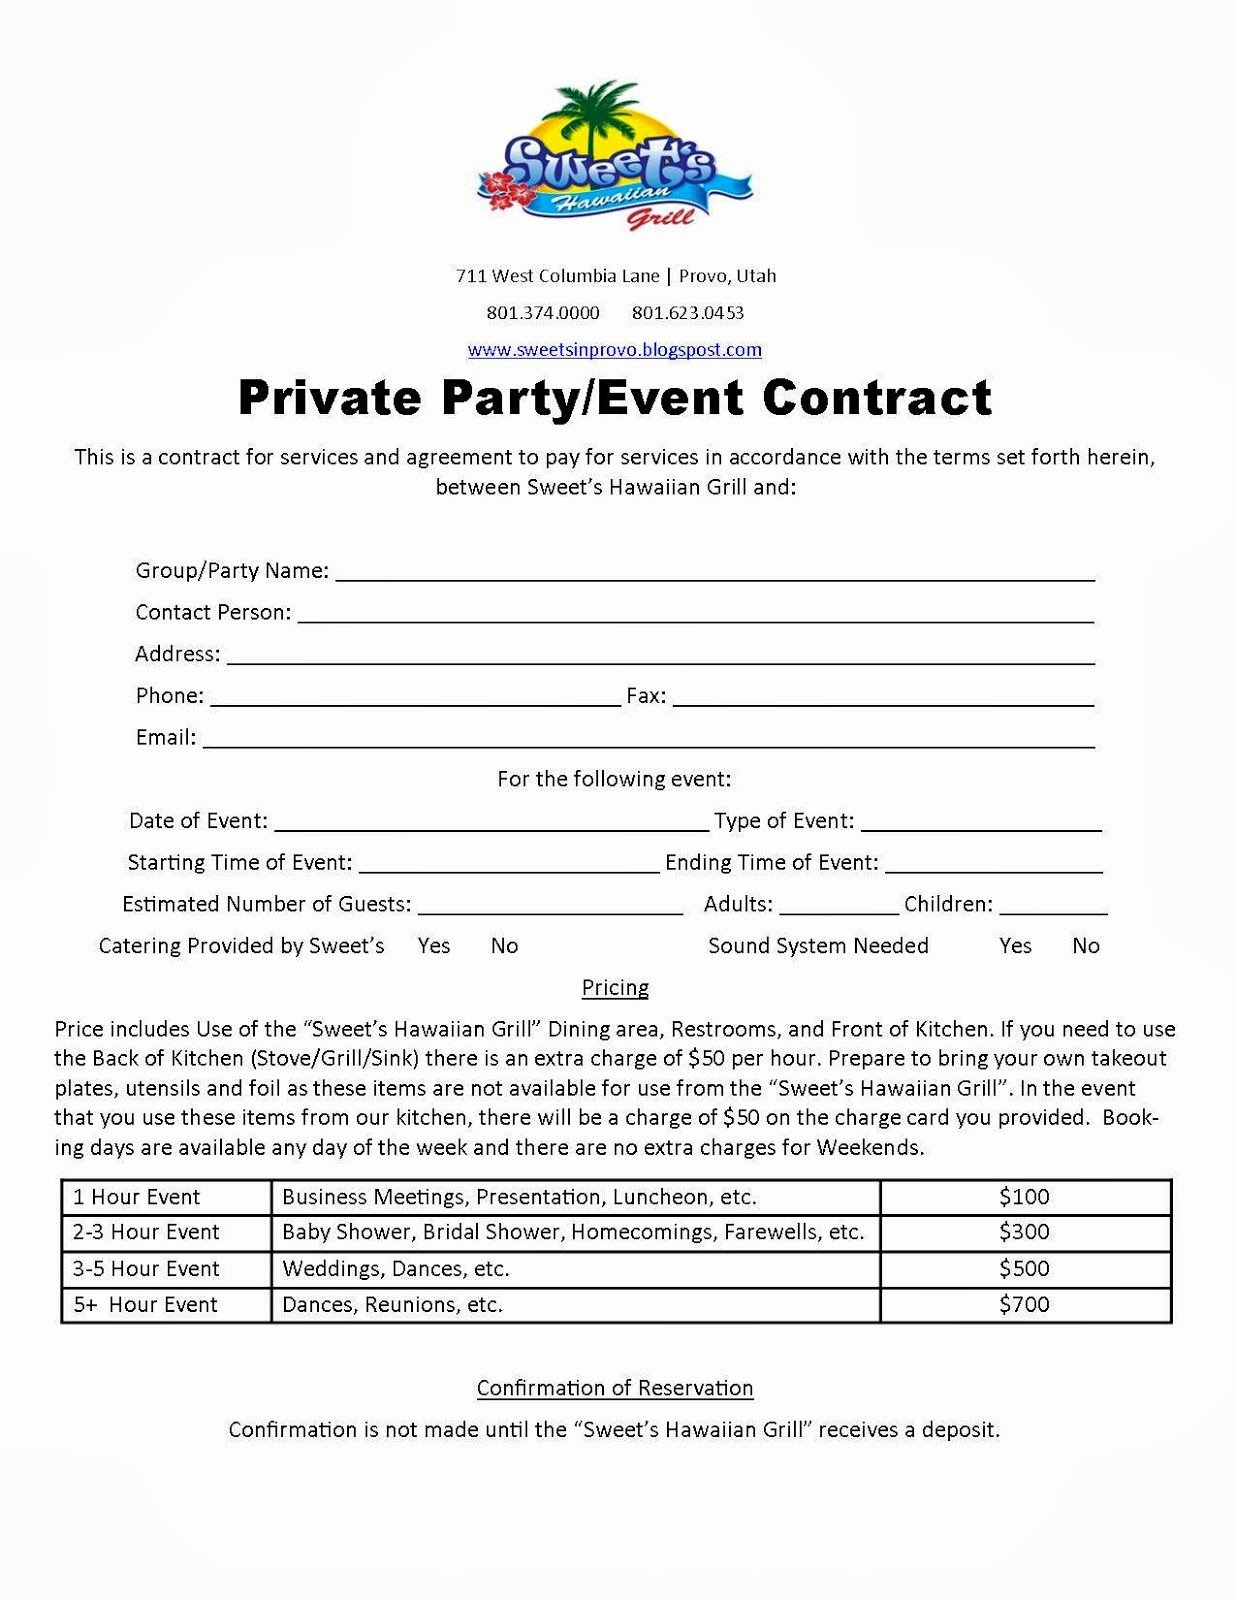 Wedding Planners Contract Template Fresh Party Planner Contract Template Google Search